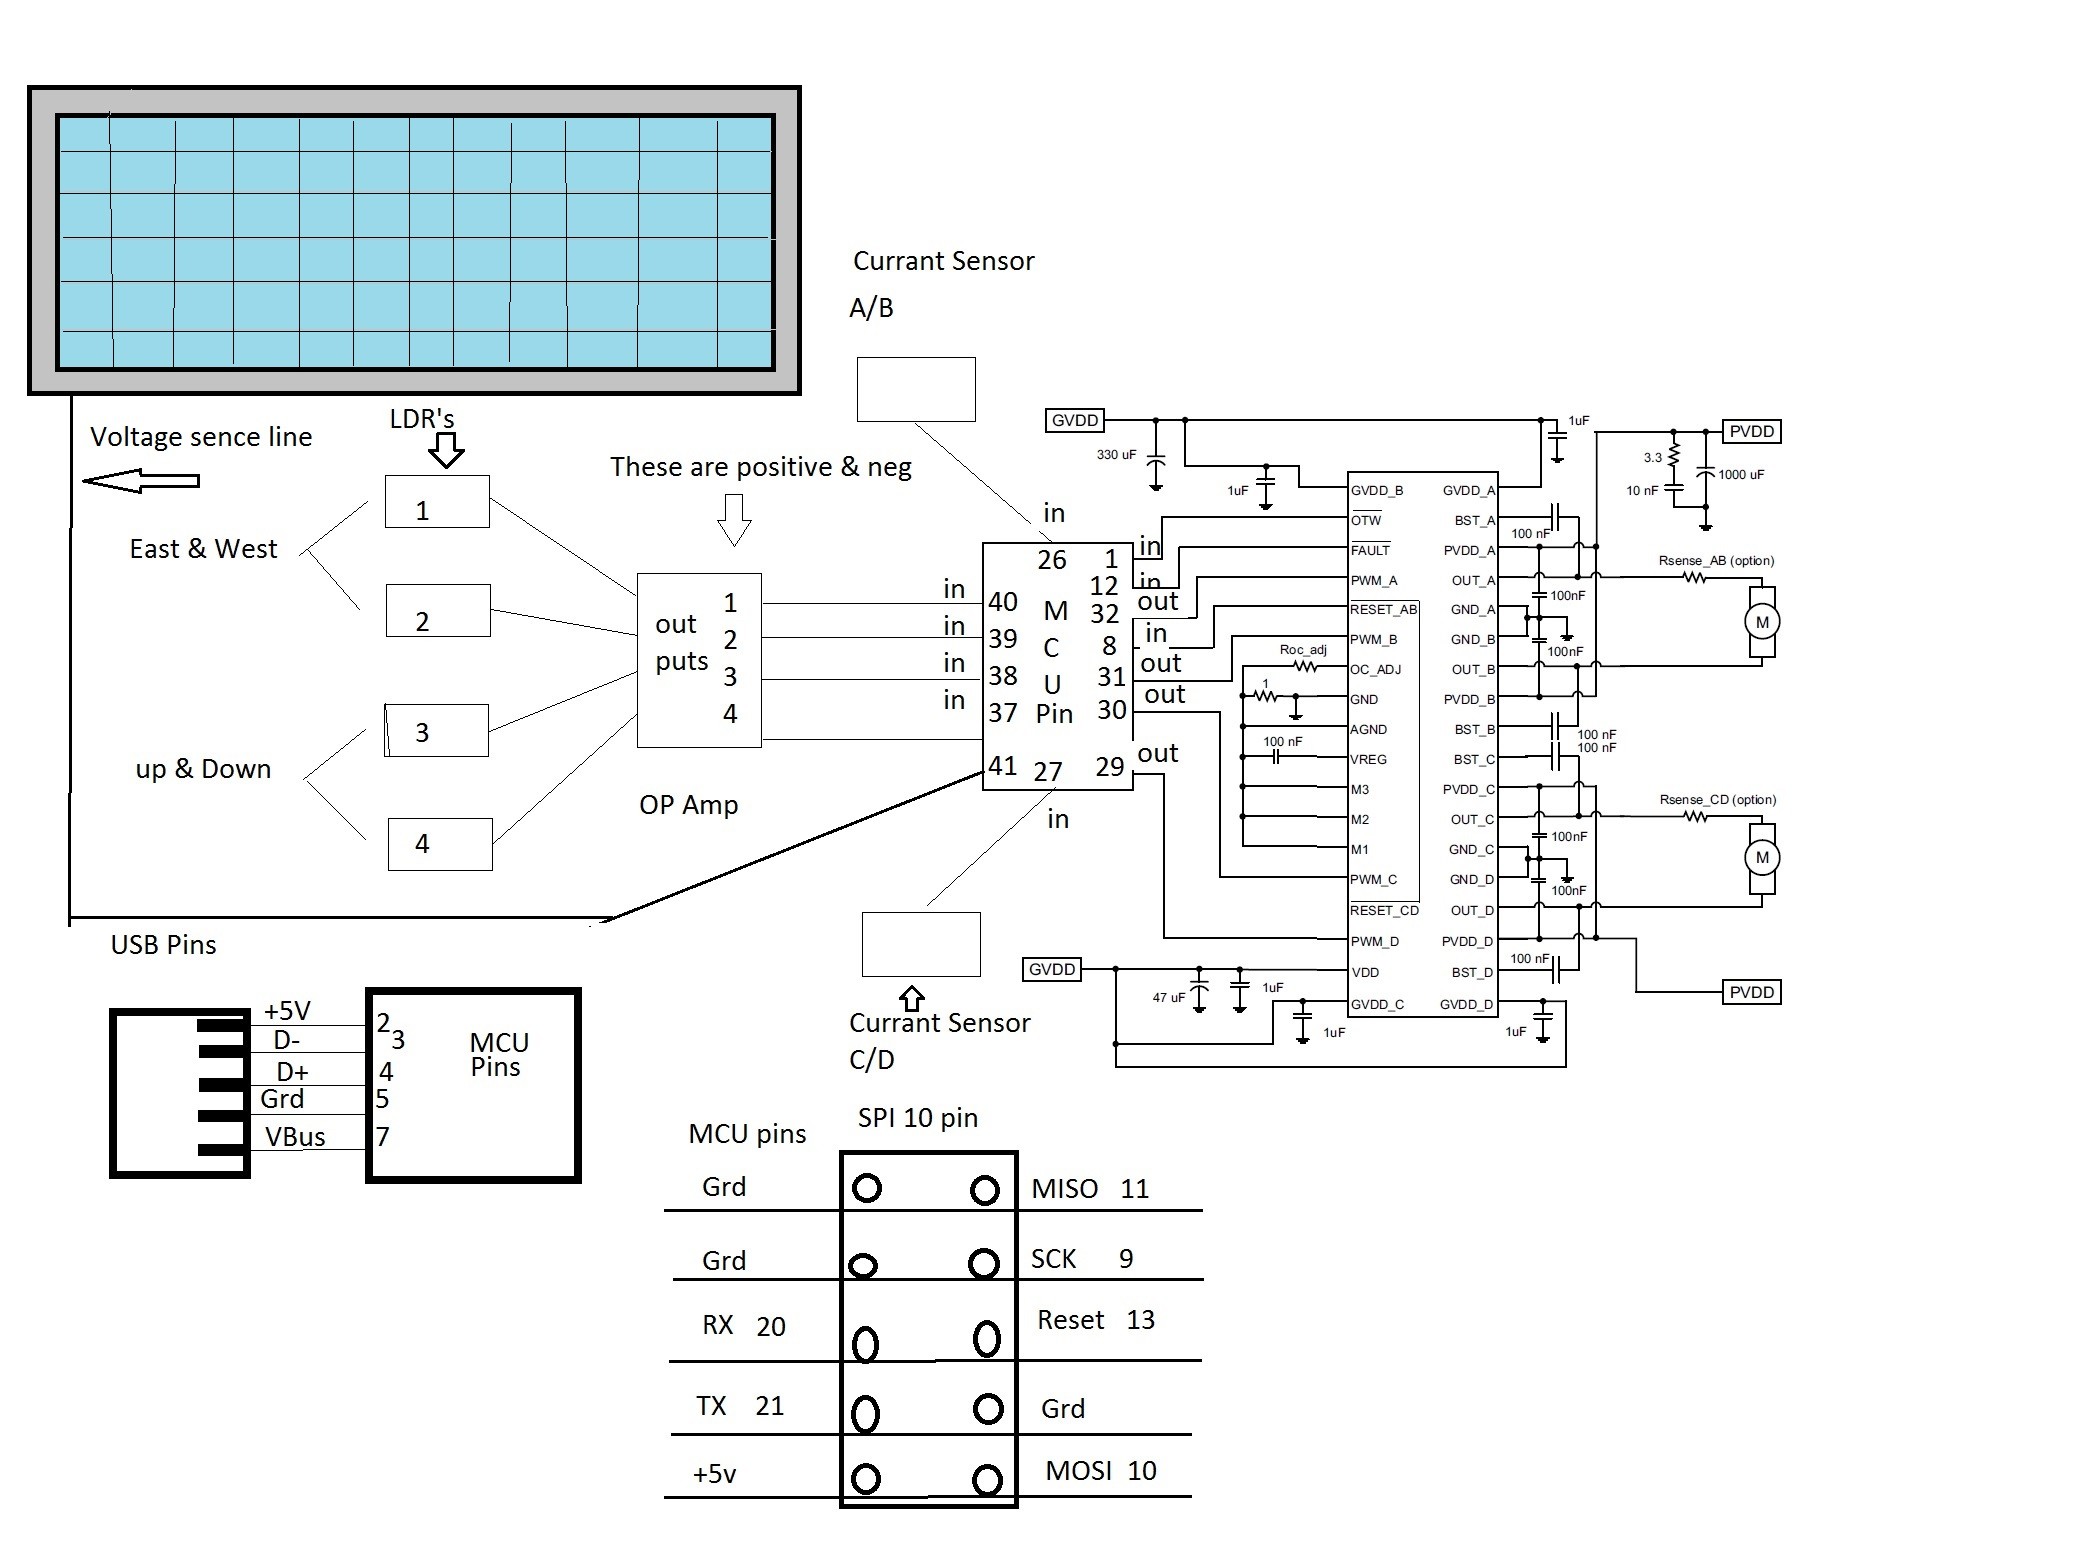 Digital Solar Tracker With Ldrs Avr Freaks How The Proposed Electronic Controller Circuit Works Drv8432 373009 H Bridge Controllerpdf Adobe Reader 2015 01 27 082423 Image Icon